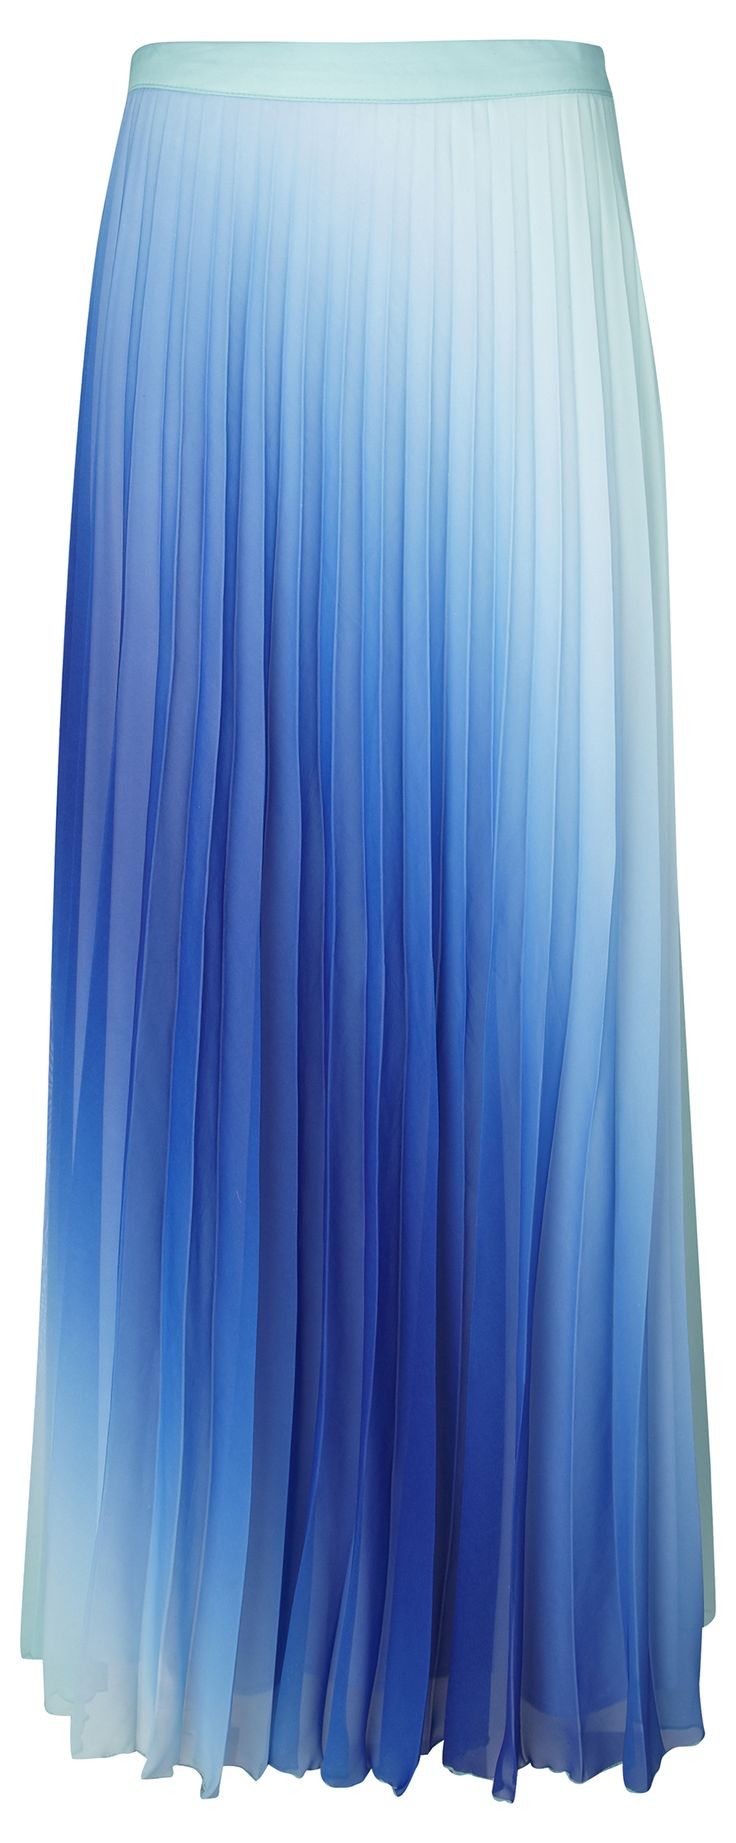 17 Best Images About Ombre On Pinterest Royal Dresses